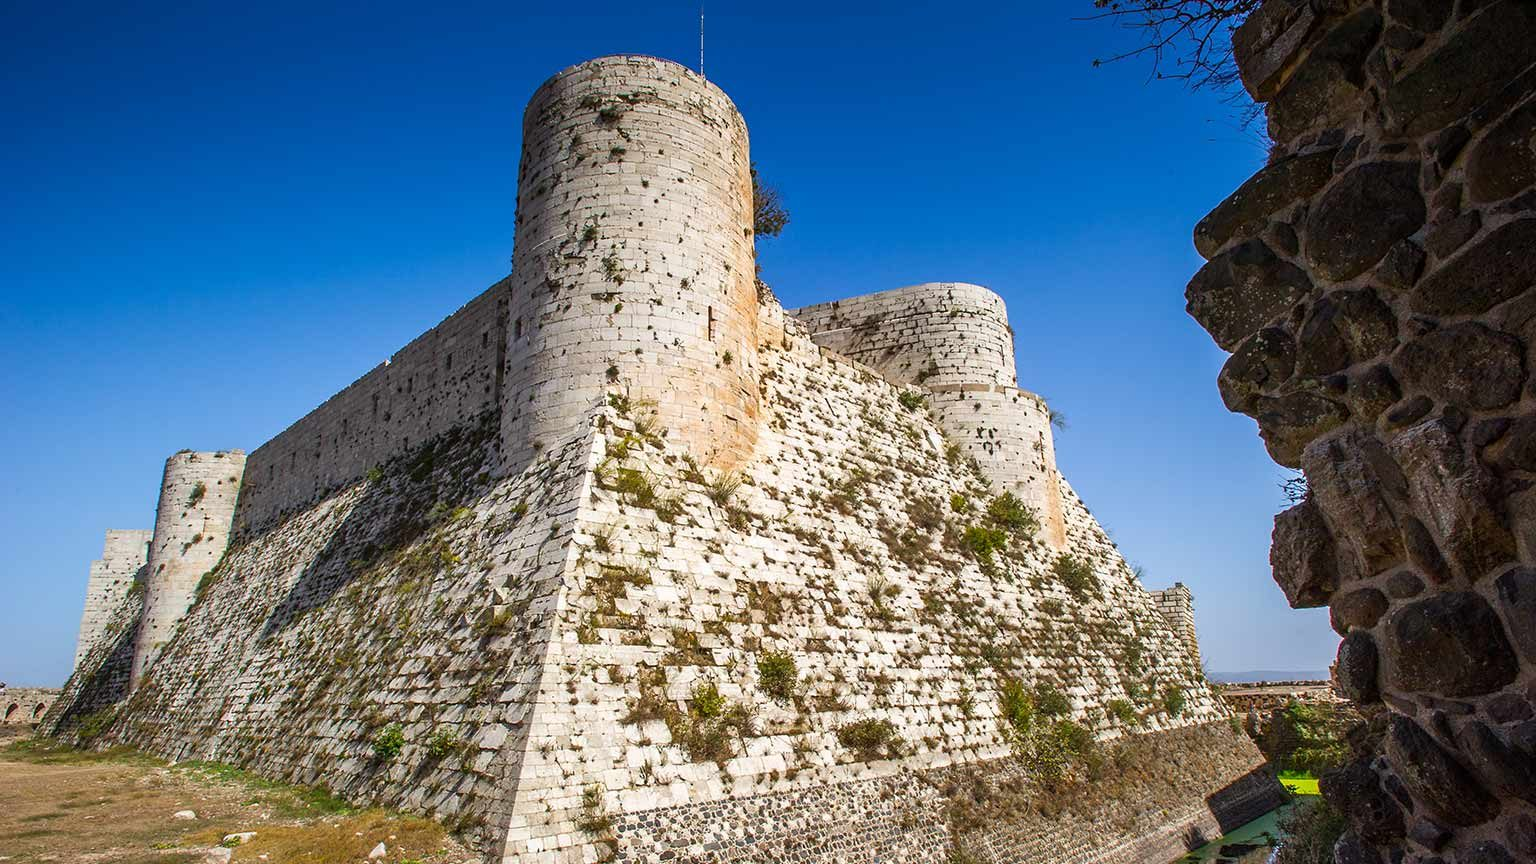 Old castle in Syria